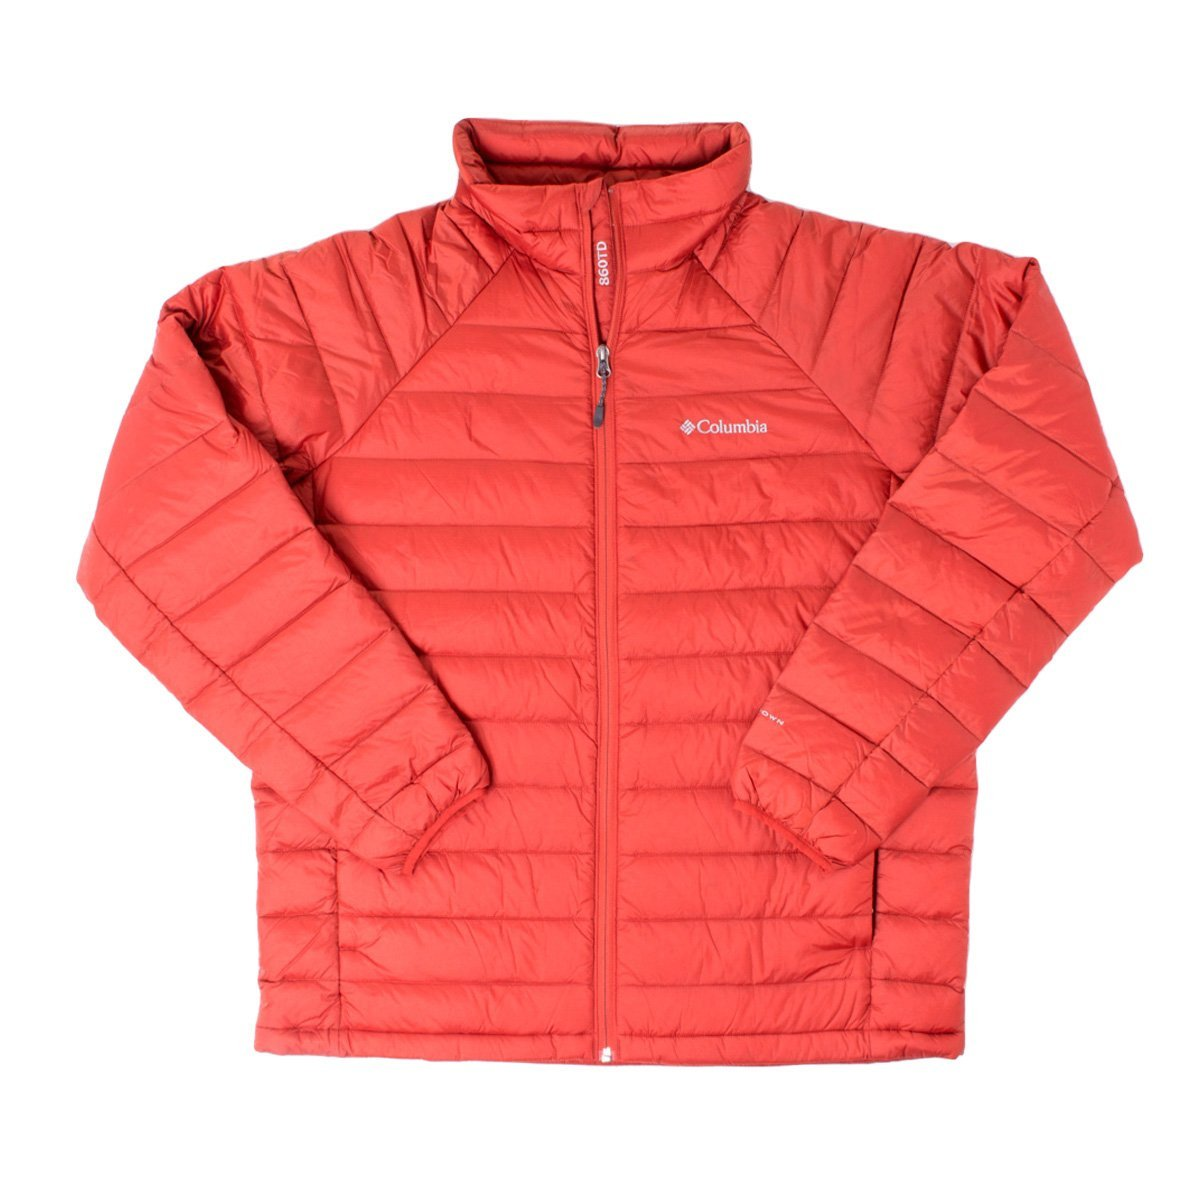 Columbia Men's Platinum Plus 860 TurboDown Jacket Flame Outerwear